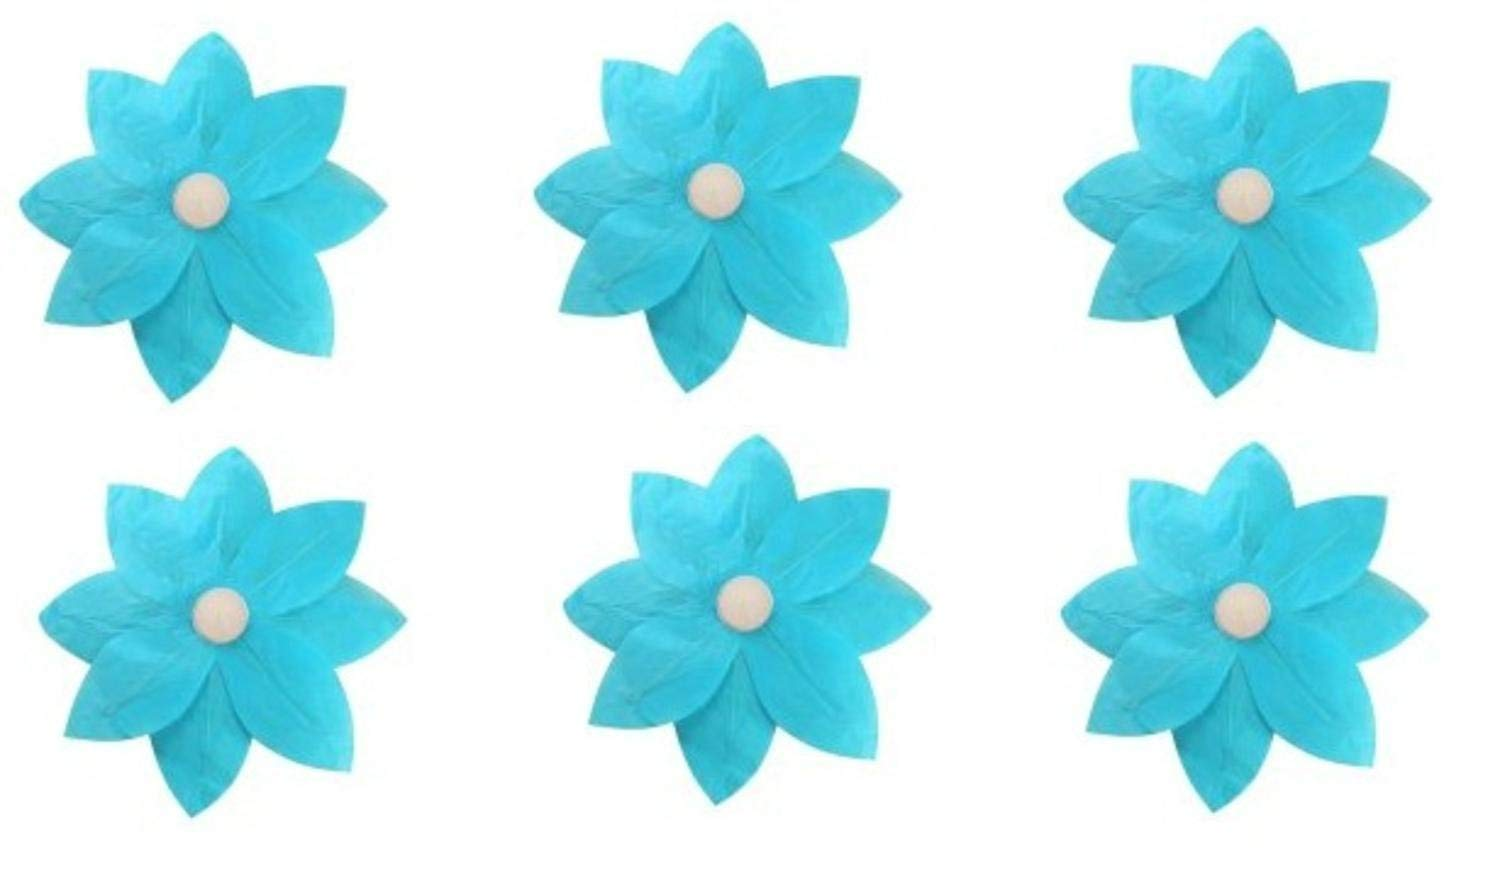 Pack of 6 Turquoise Floating Lotus Paper Flower Outdoor Patio Decor Lanterns